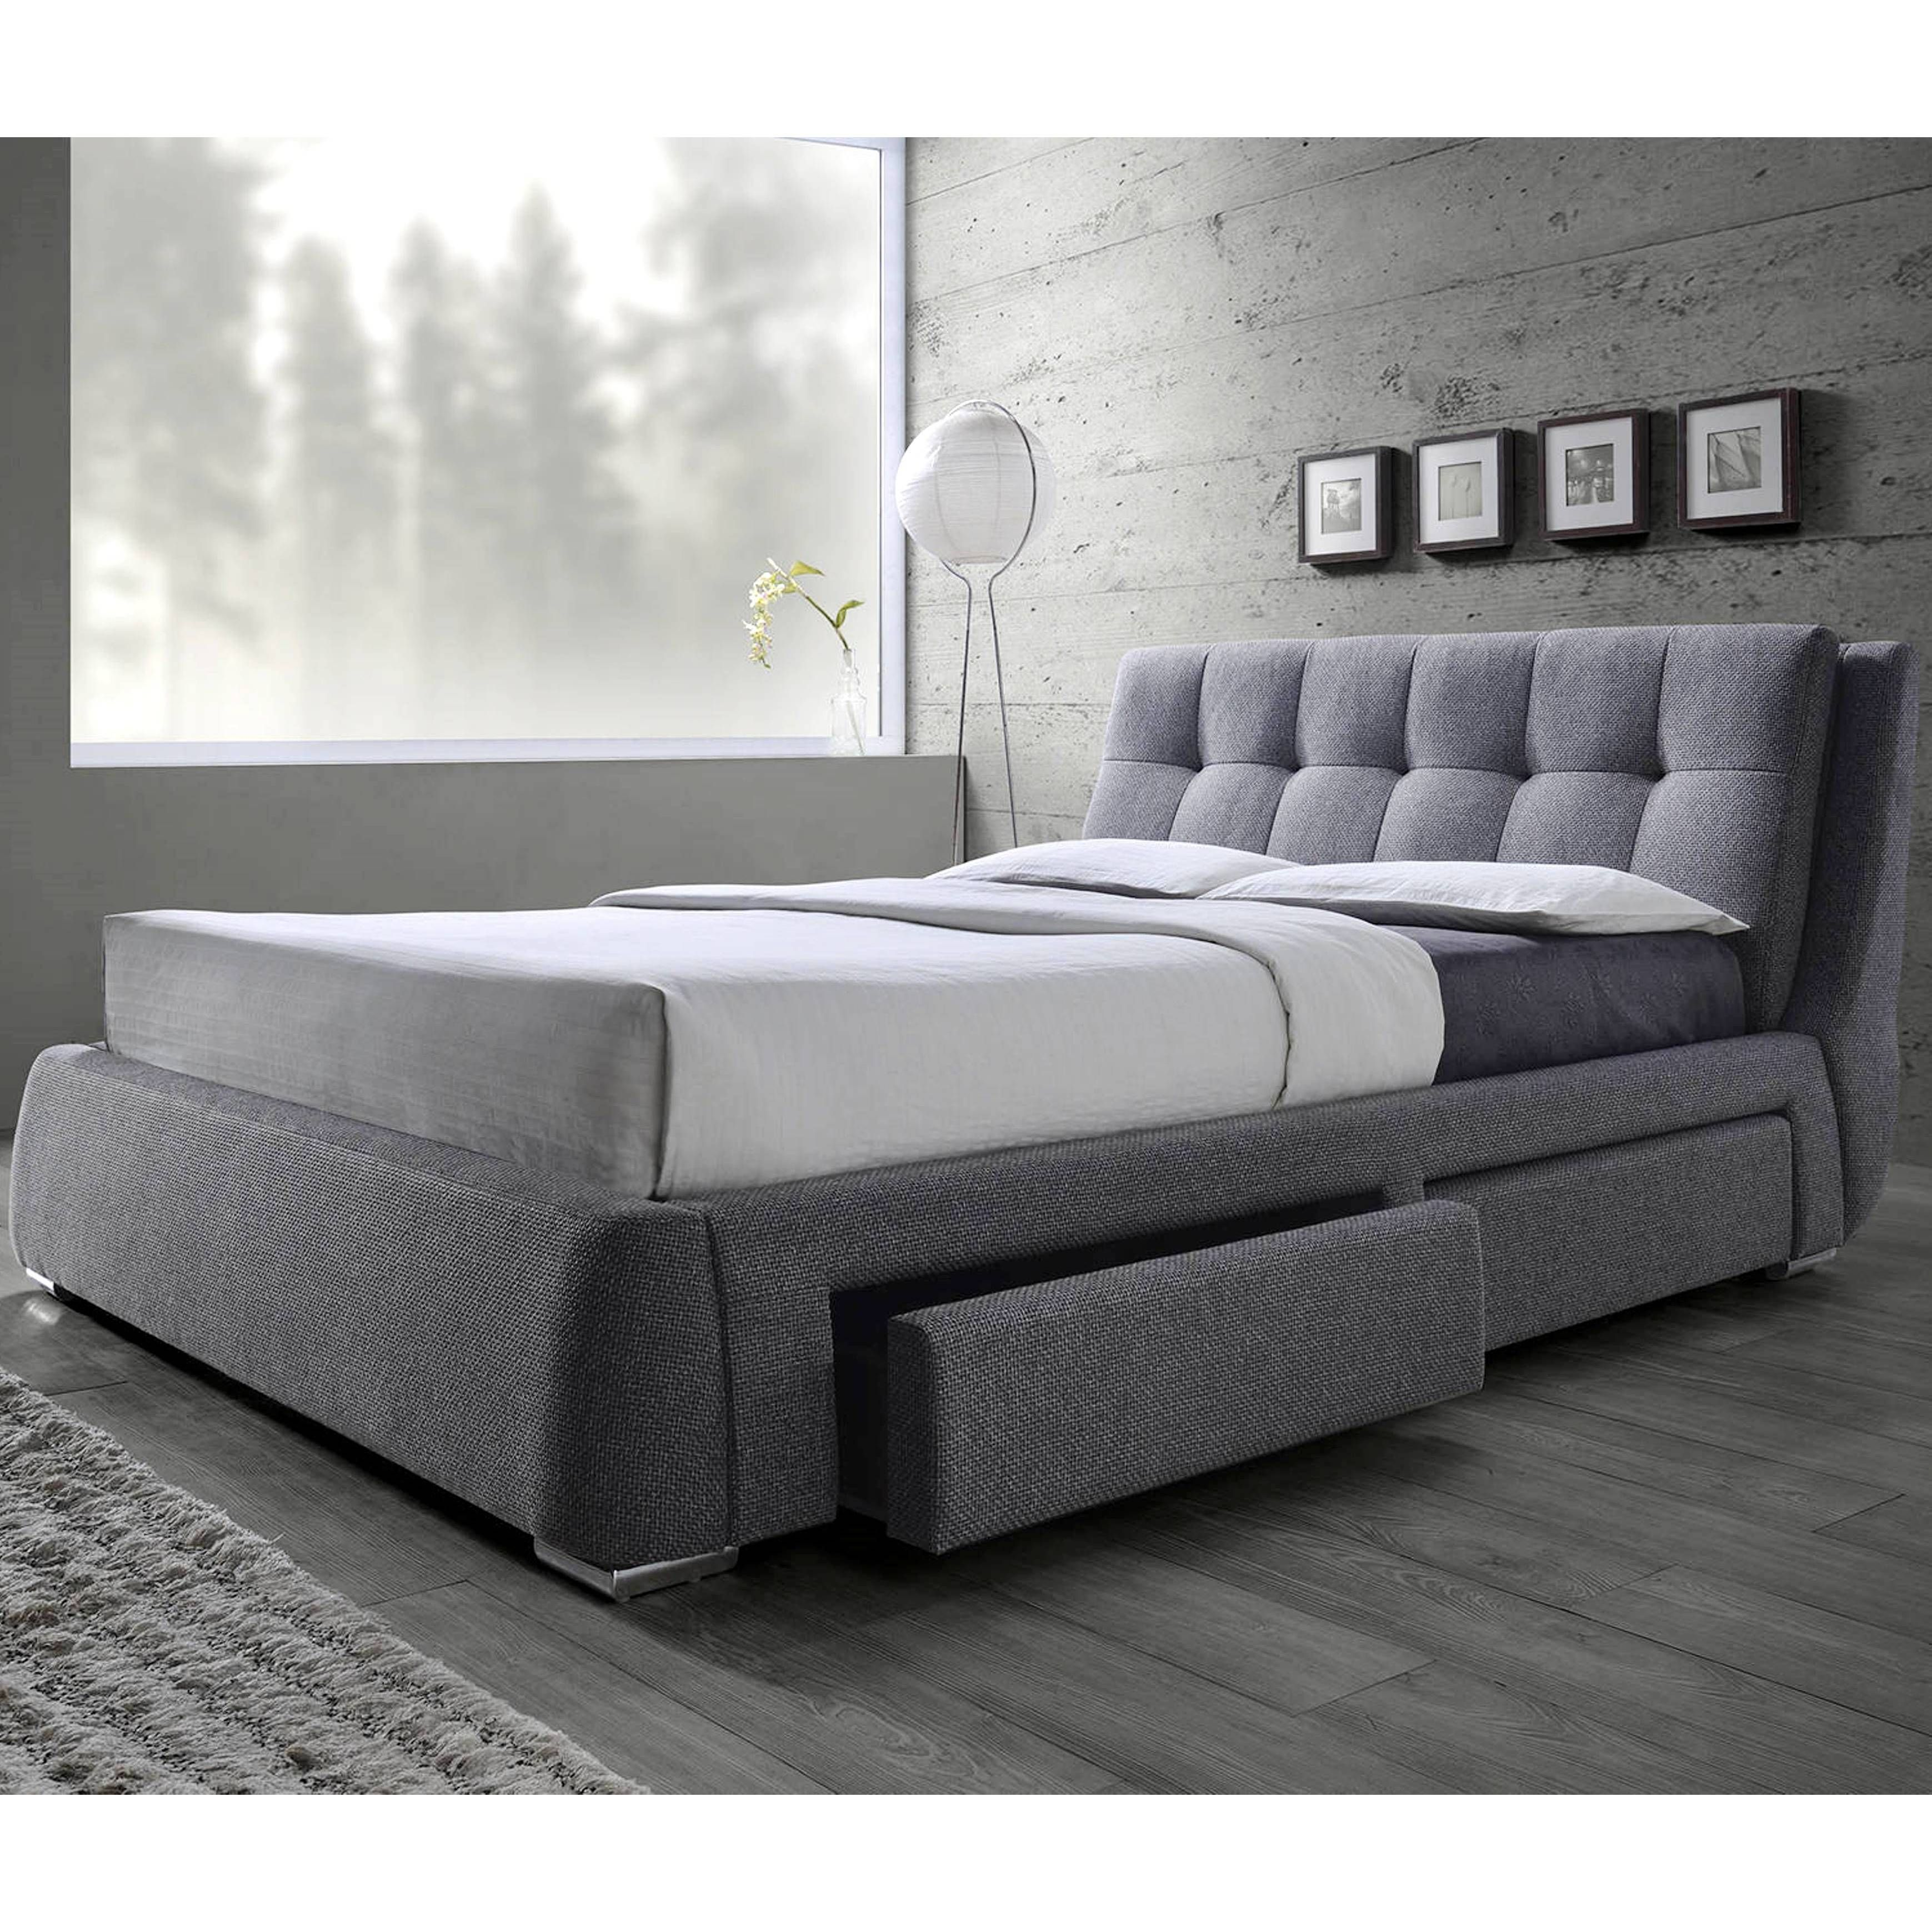 83afe367c906 Tufted Design Upholstered Storage Bed with Pillow Top Headboard (California King  Size Bed),